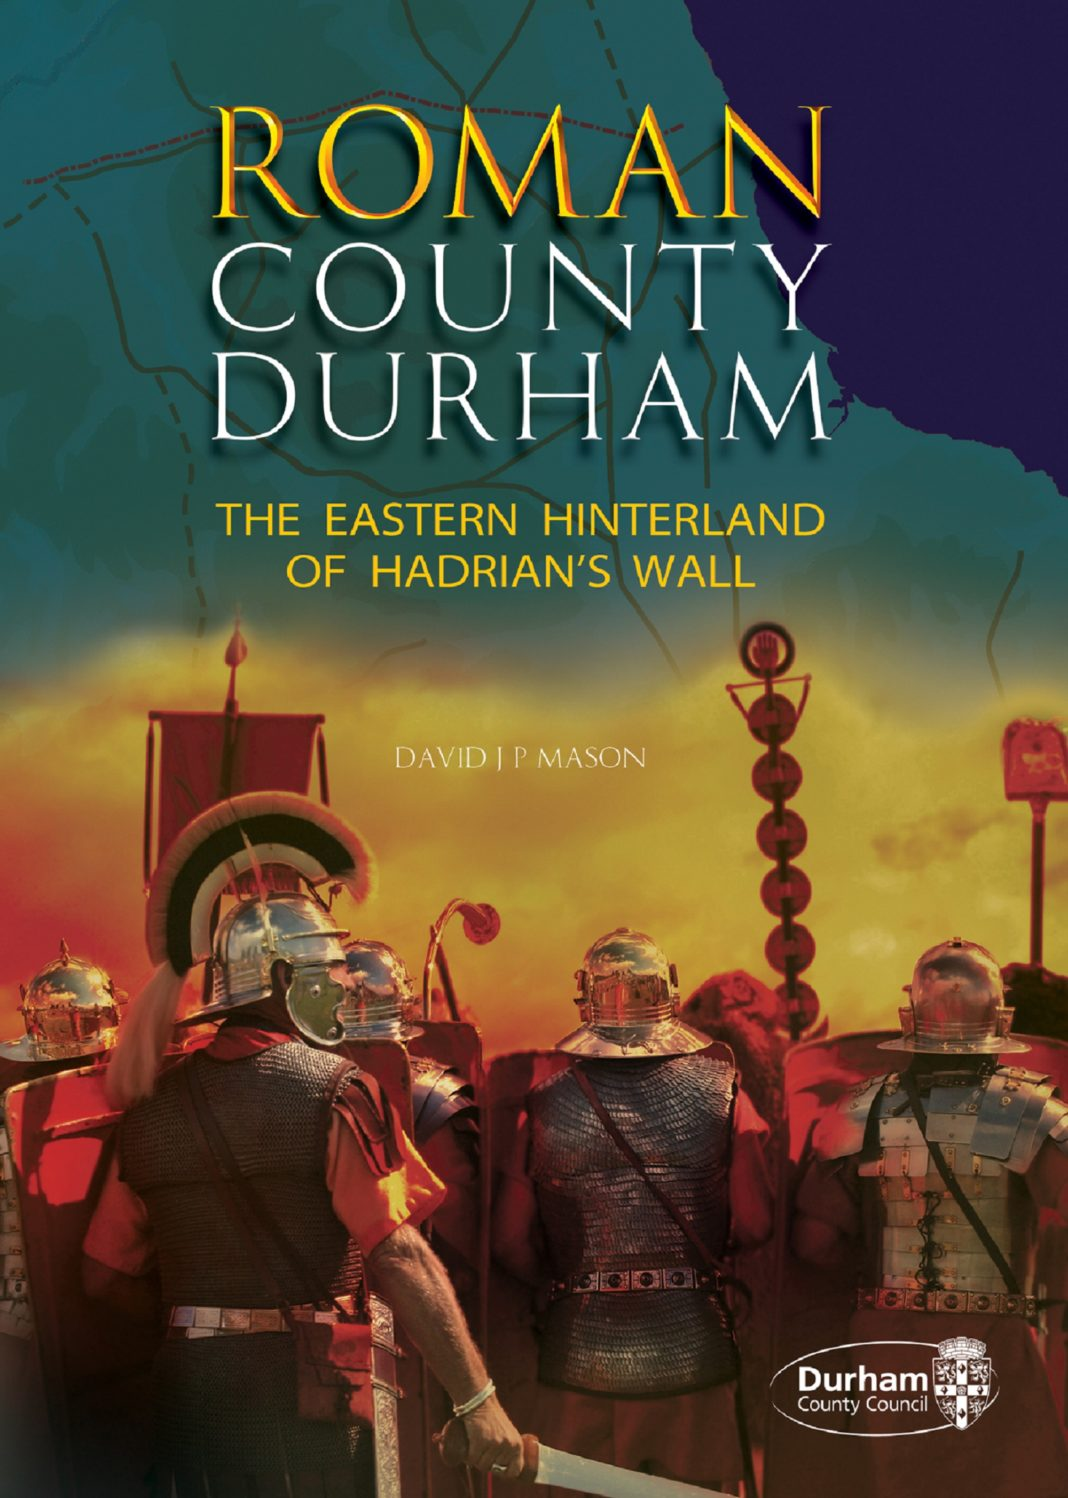 New Book Featuring The Roman Civilisation On County Durham's Development To Be Released